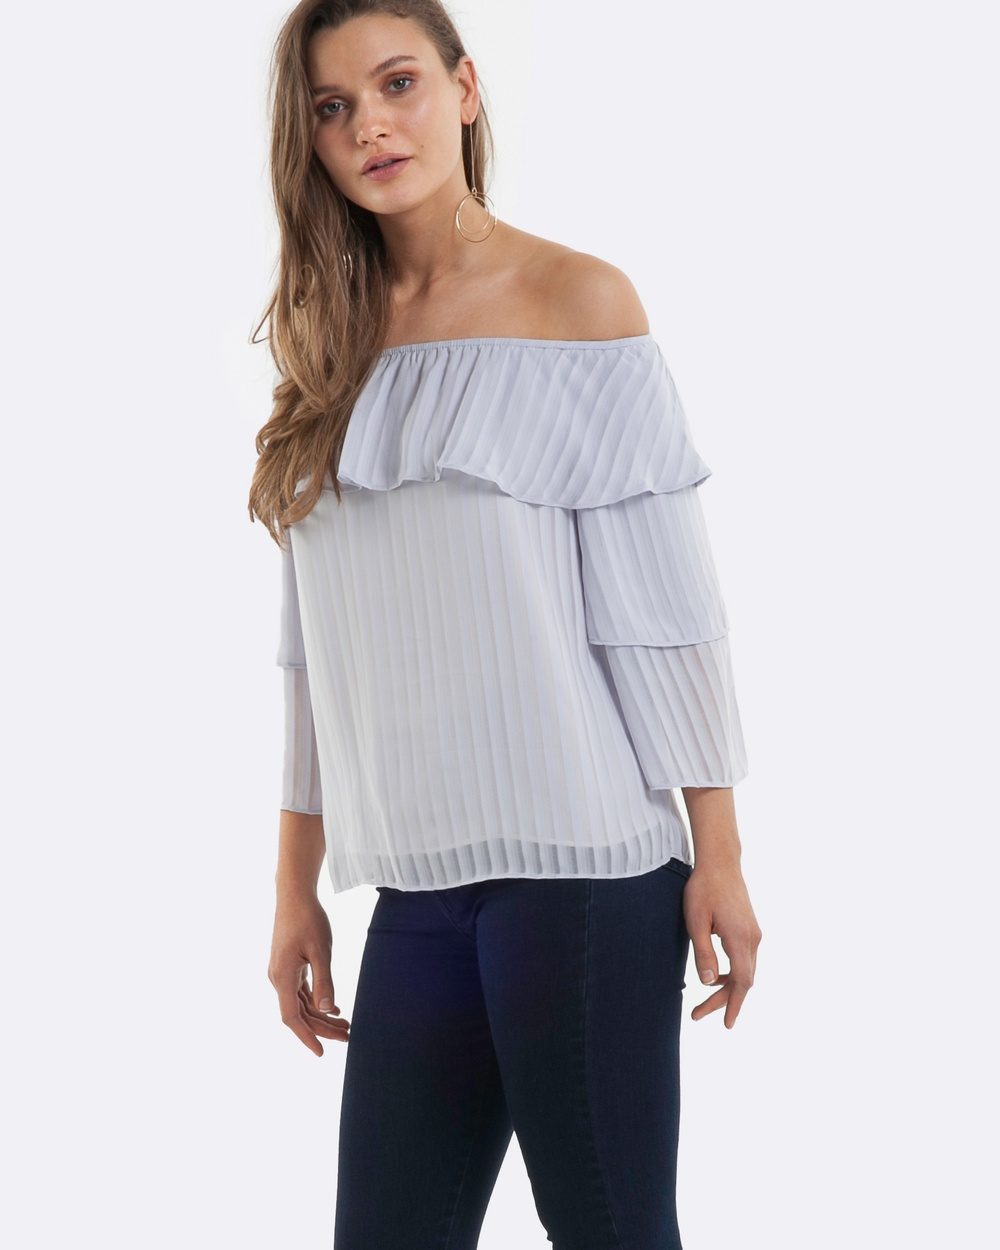 Amelius Adorned Top Tops Silver Adorned Top